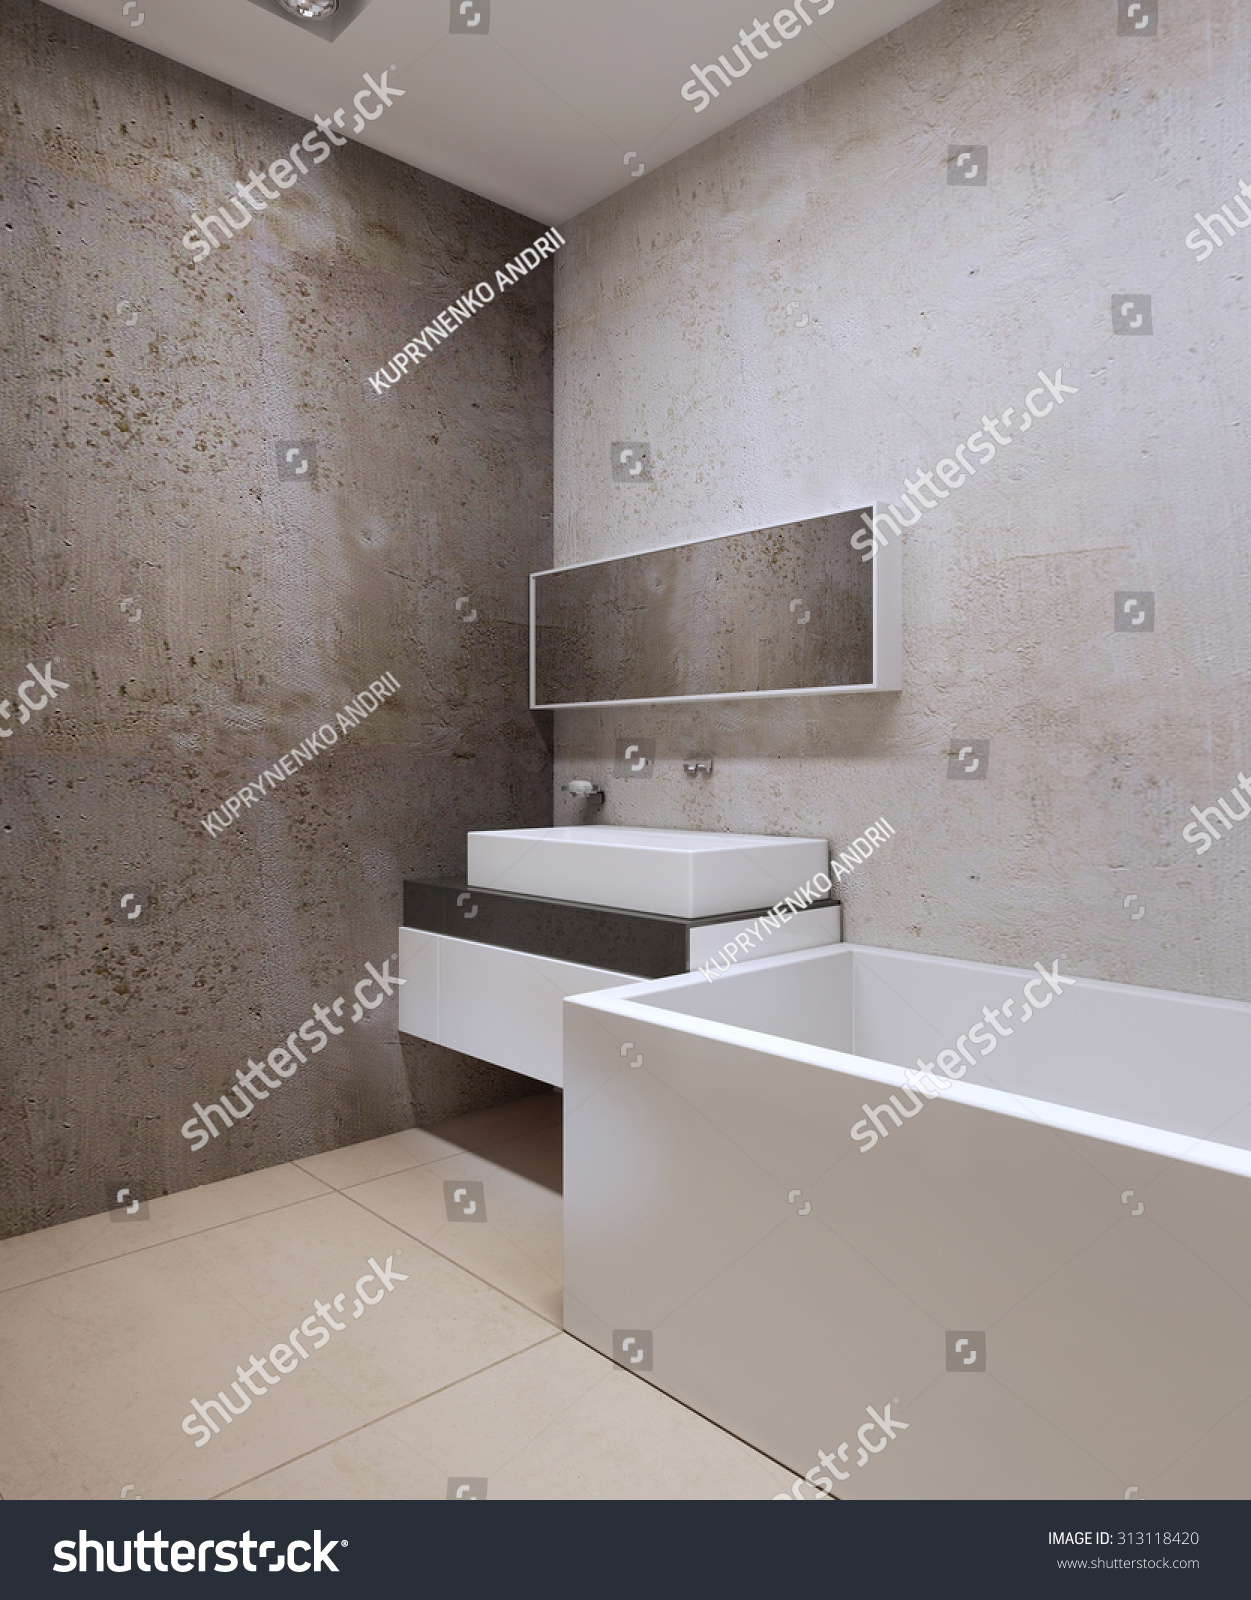 Textured walls in bathroom - Bathroom Techno Style Decorative Concrete Textured Walls Cream Colored Marble Tile Flooring Sink